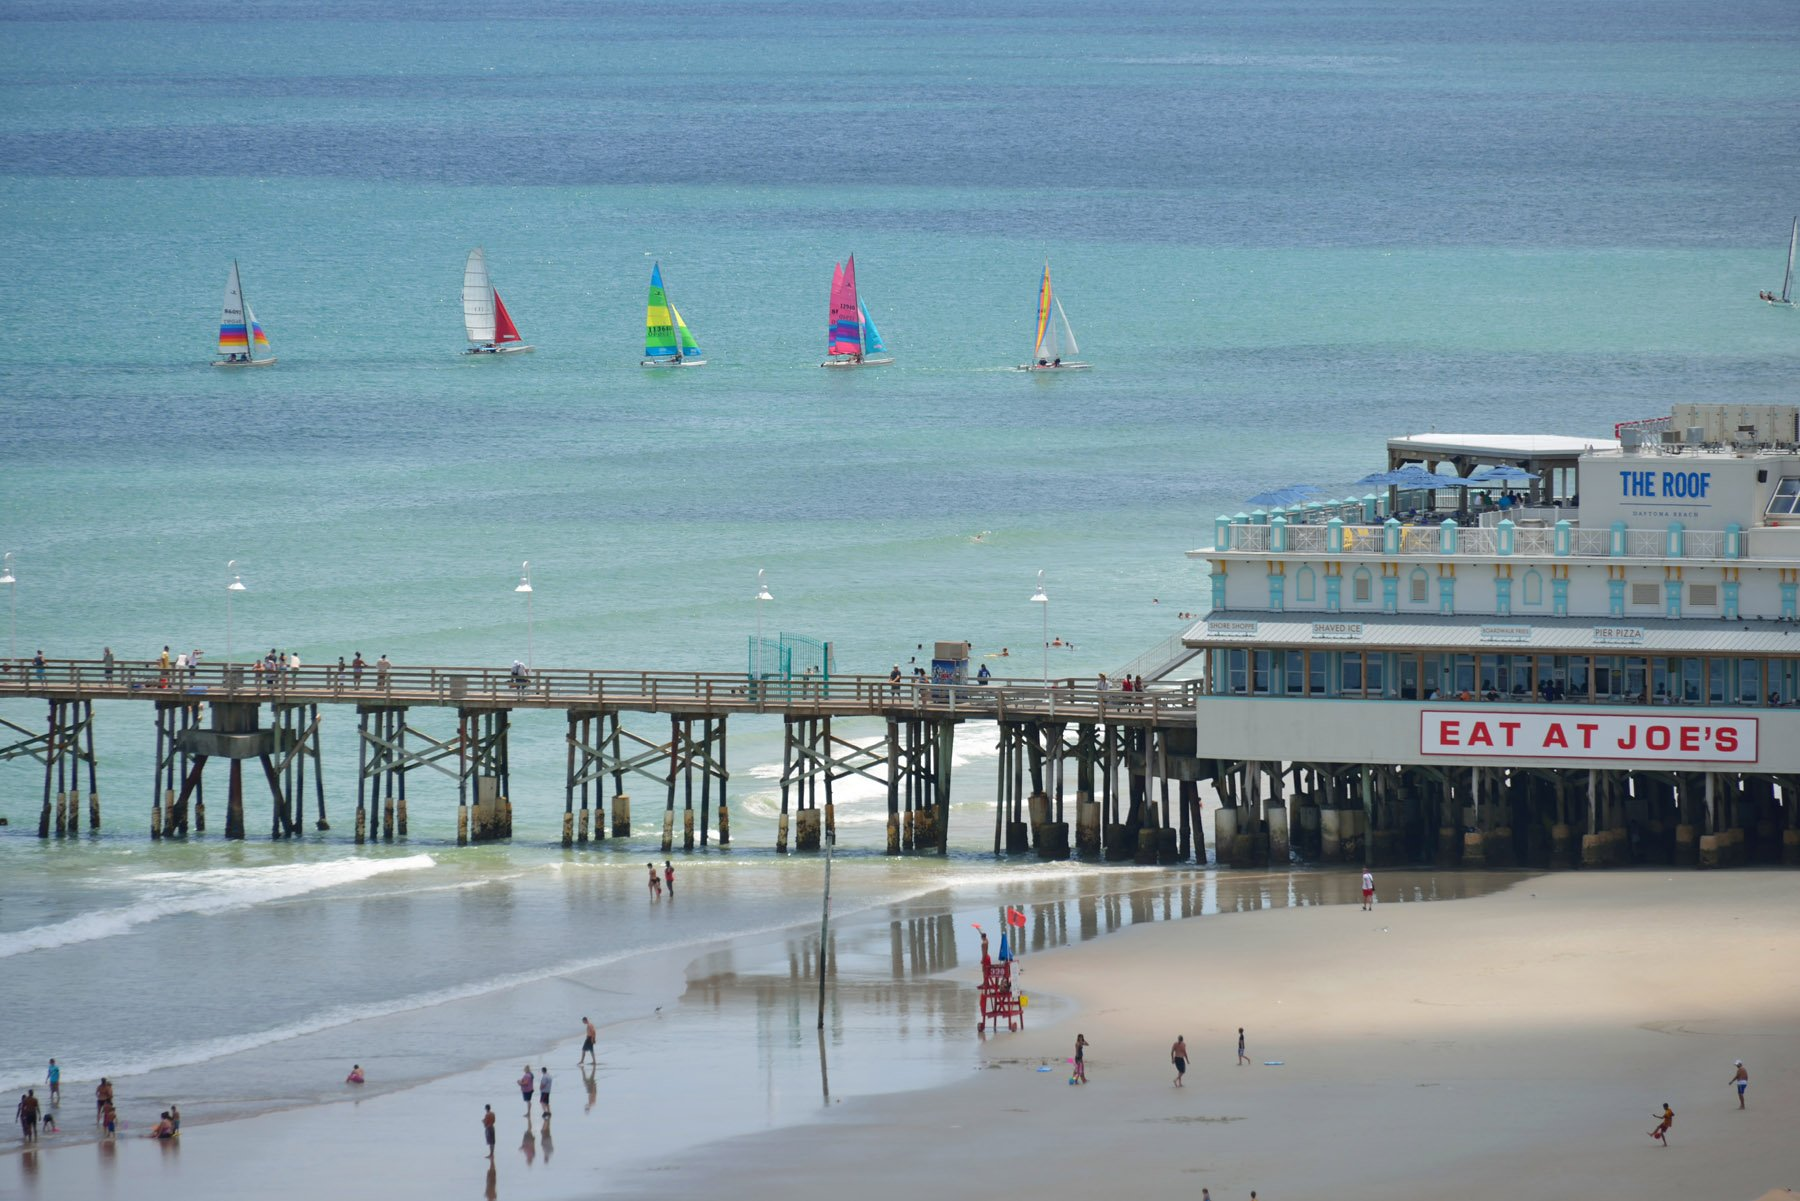 Daytona Beach on Florida's East Coast is a popular spot for large variety of water activities